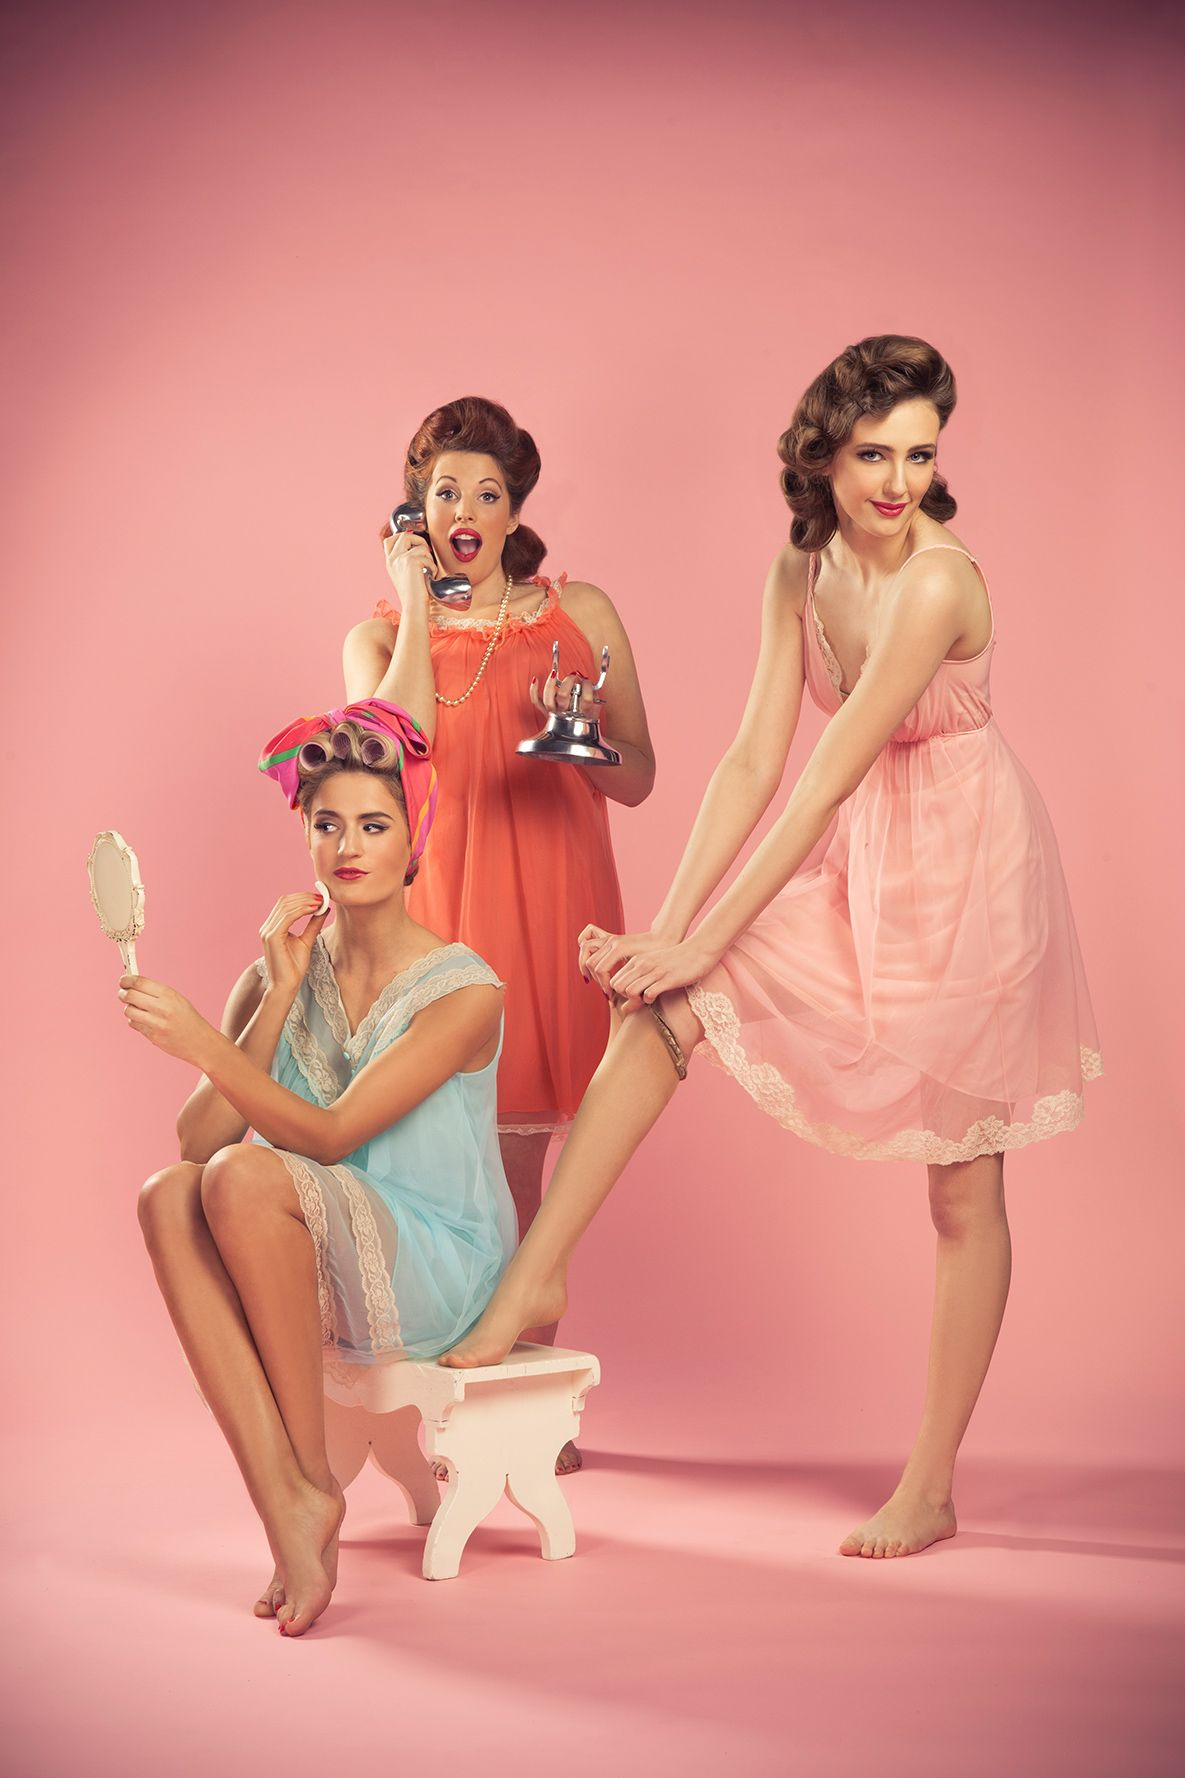 Very Vintage Style Hen Party Ideas Onefabday Com Classy Bachelorette Party Wedding Party Dresses Party Photoshoot